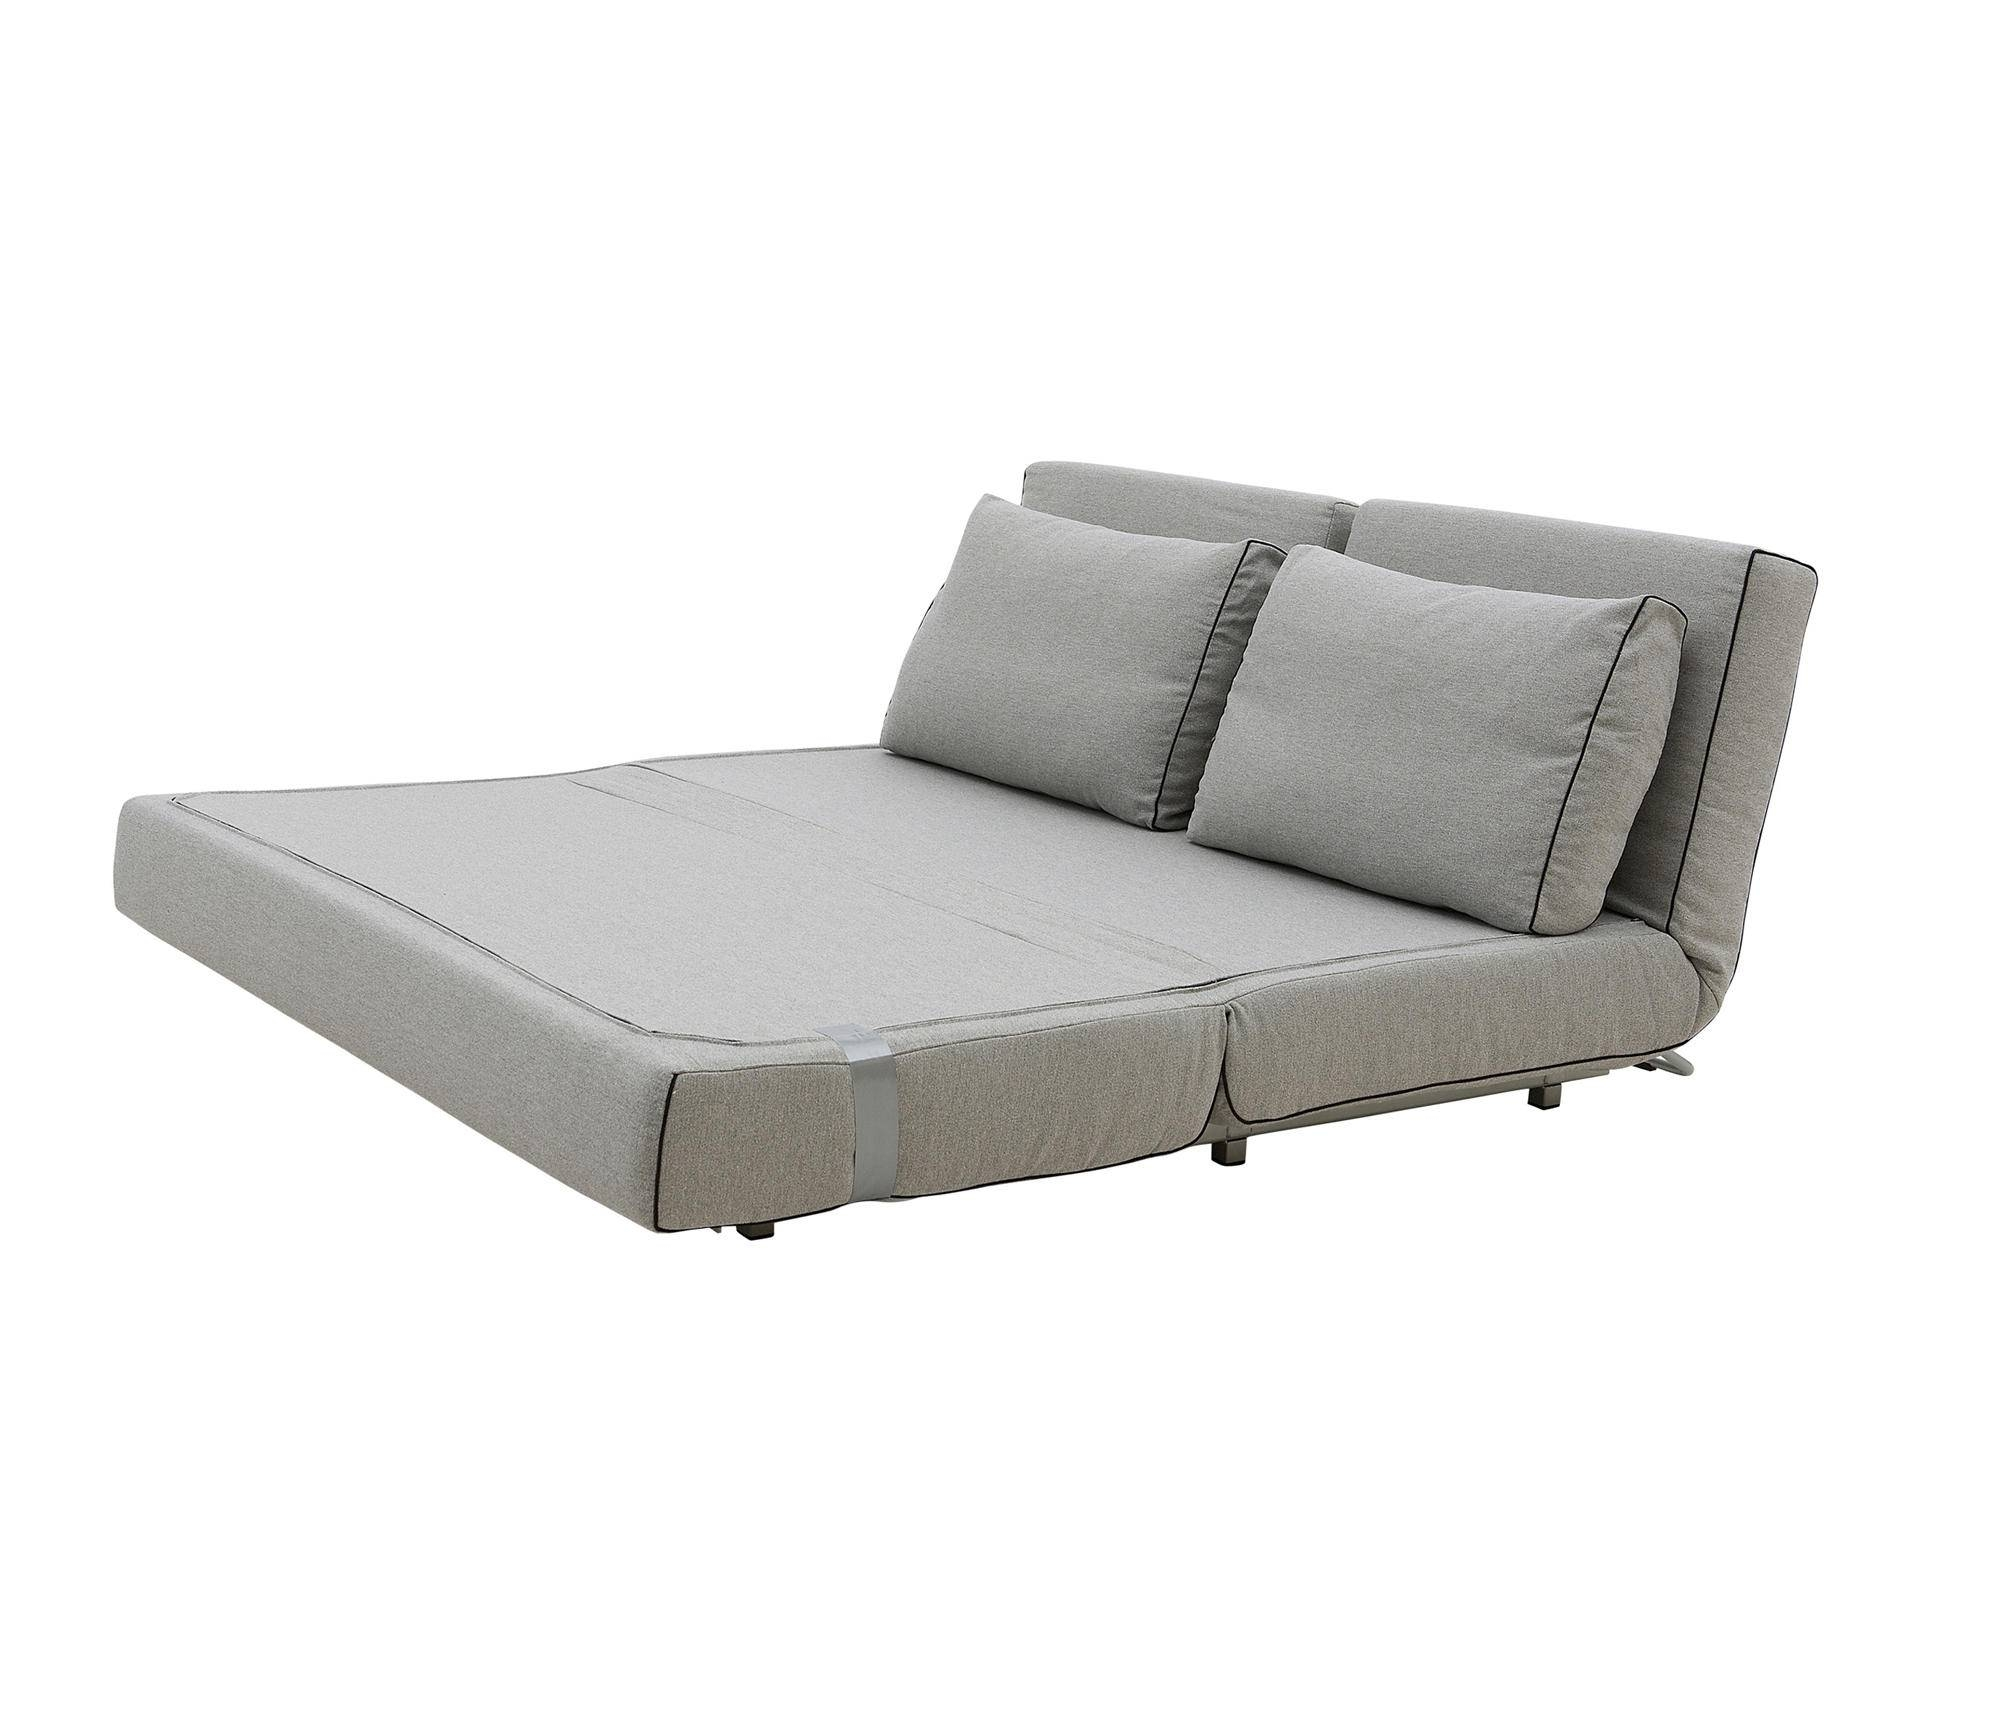 City Sofa – Sofa Beds From Softline A/s | Architonic In City Sofa Beds (View 3 of 30)